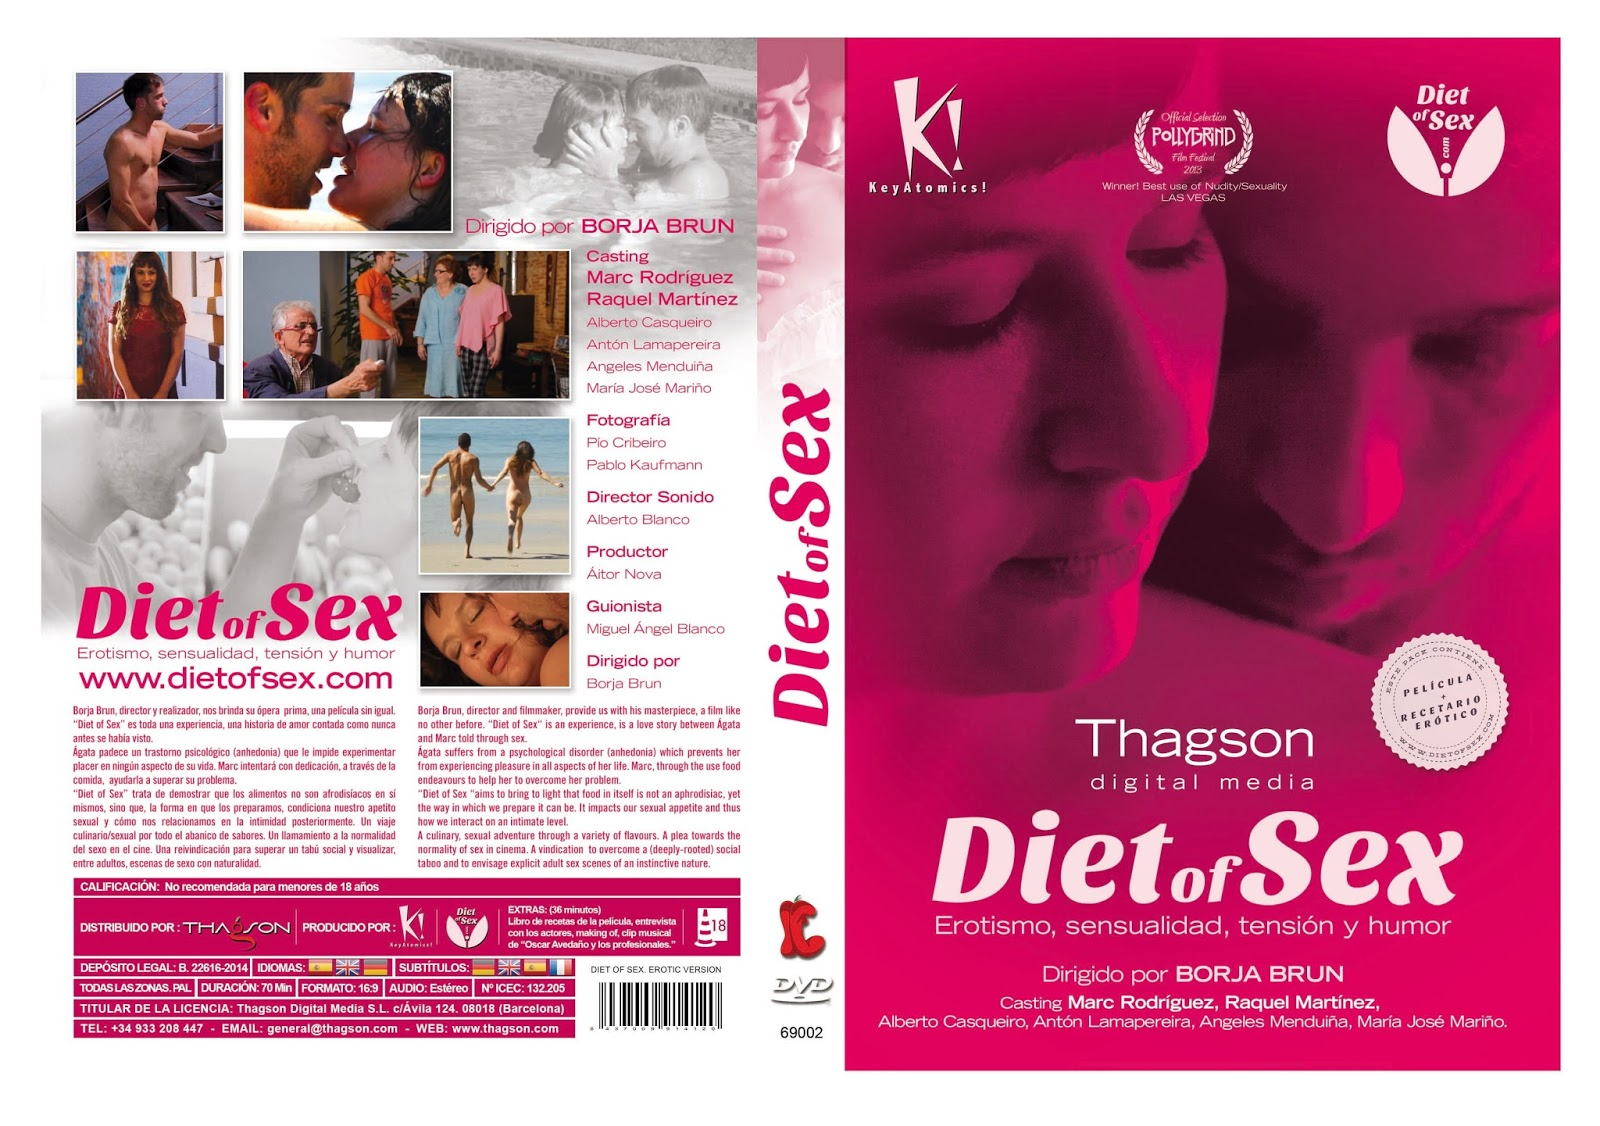 A diet of sex